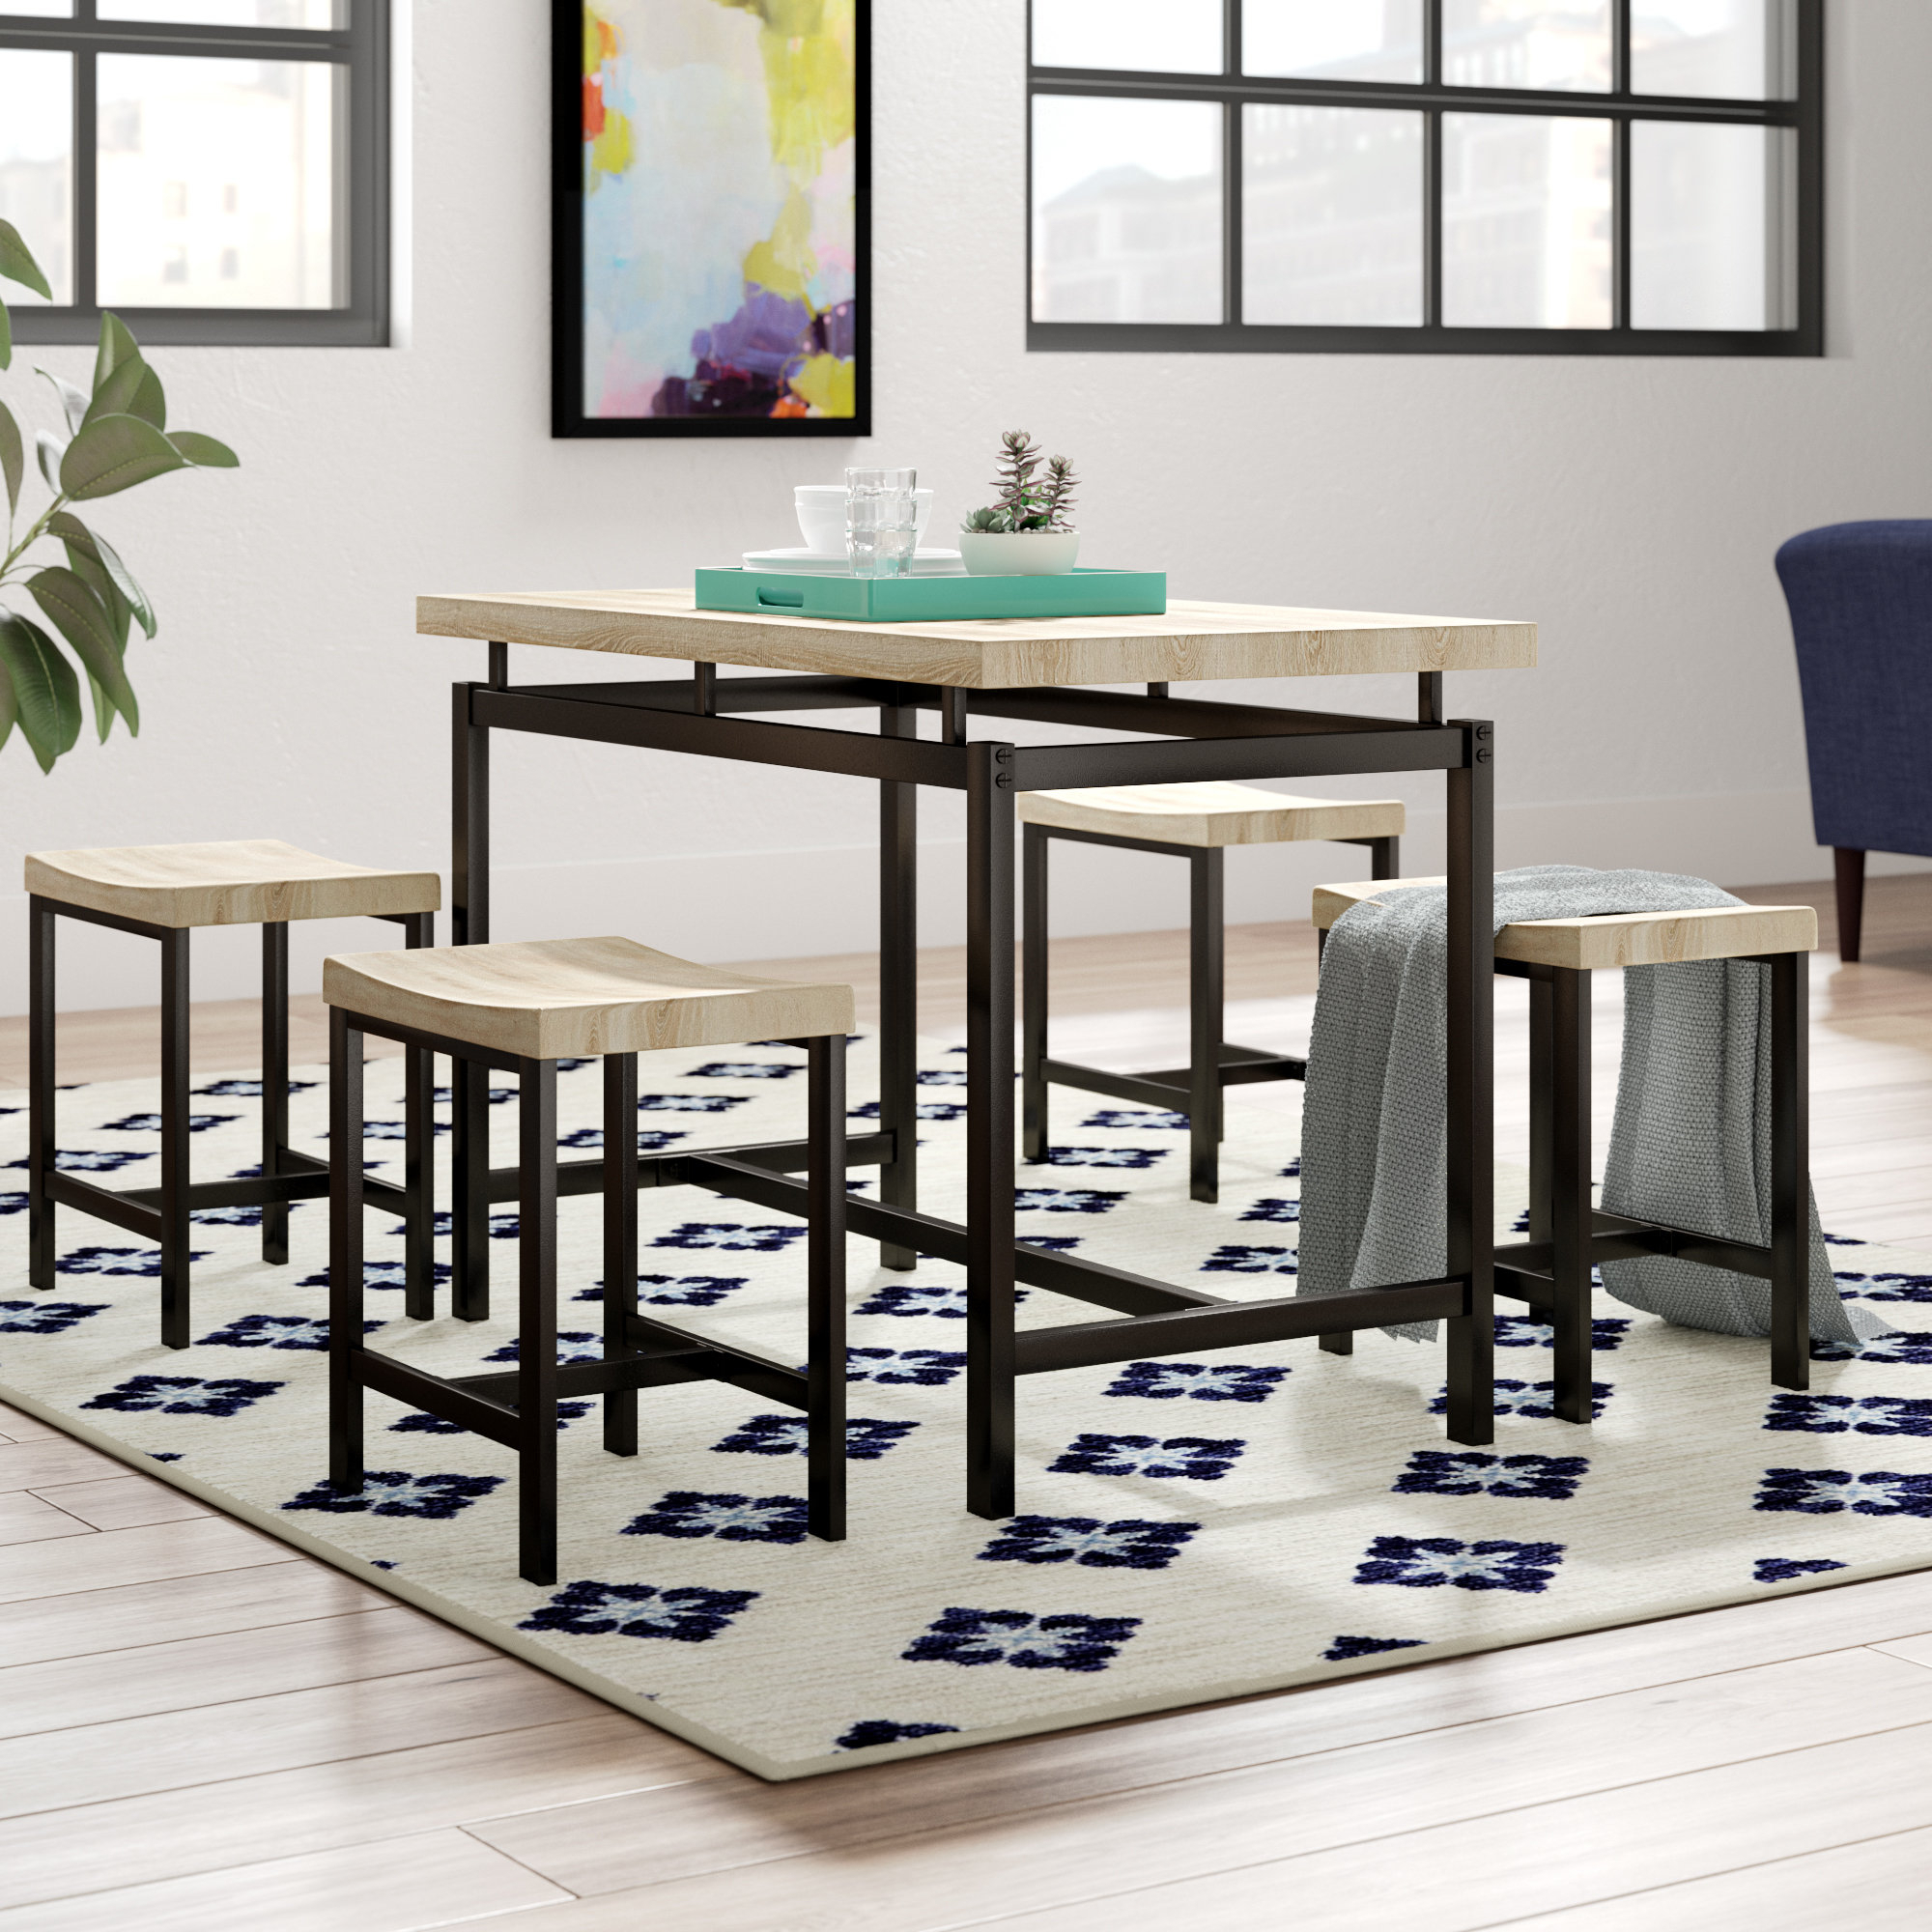 Wayfair Pertaining To Most Recently Released Middleport 5 Piece Dining Sets (View 12 of 25)